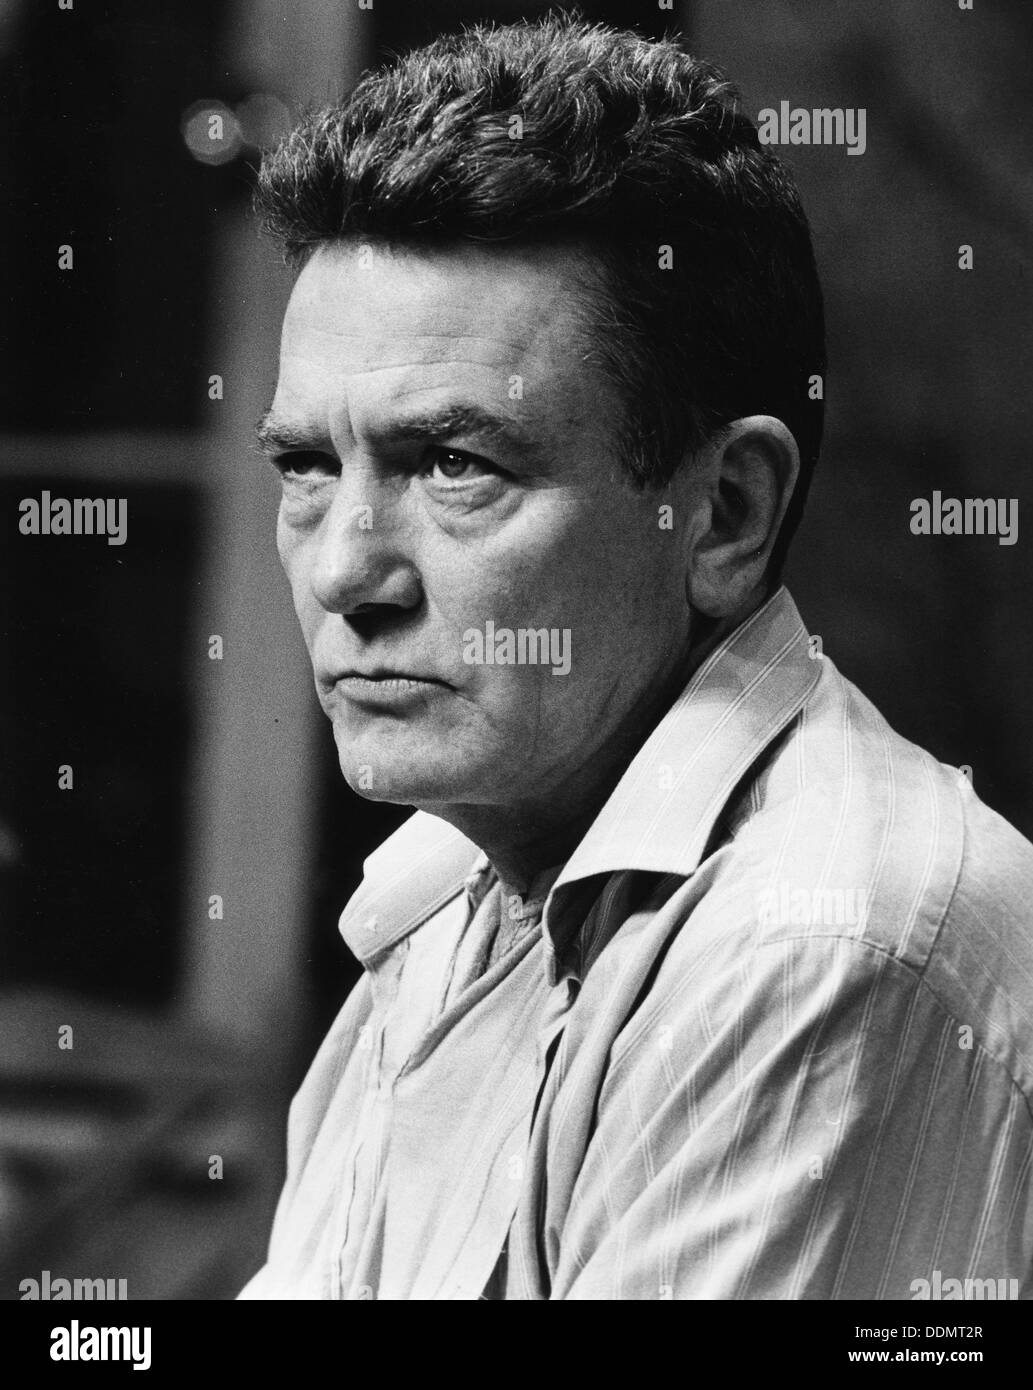 Albert Finney (1936- ), British actor. - Stock Image